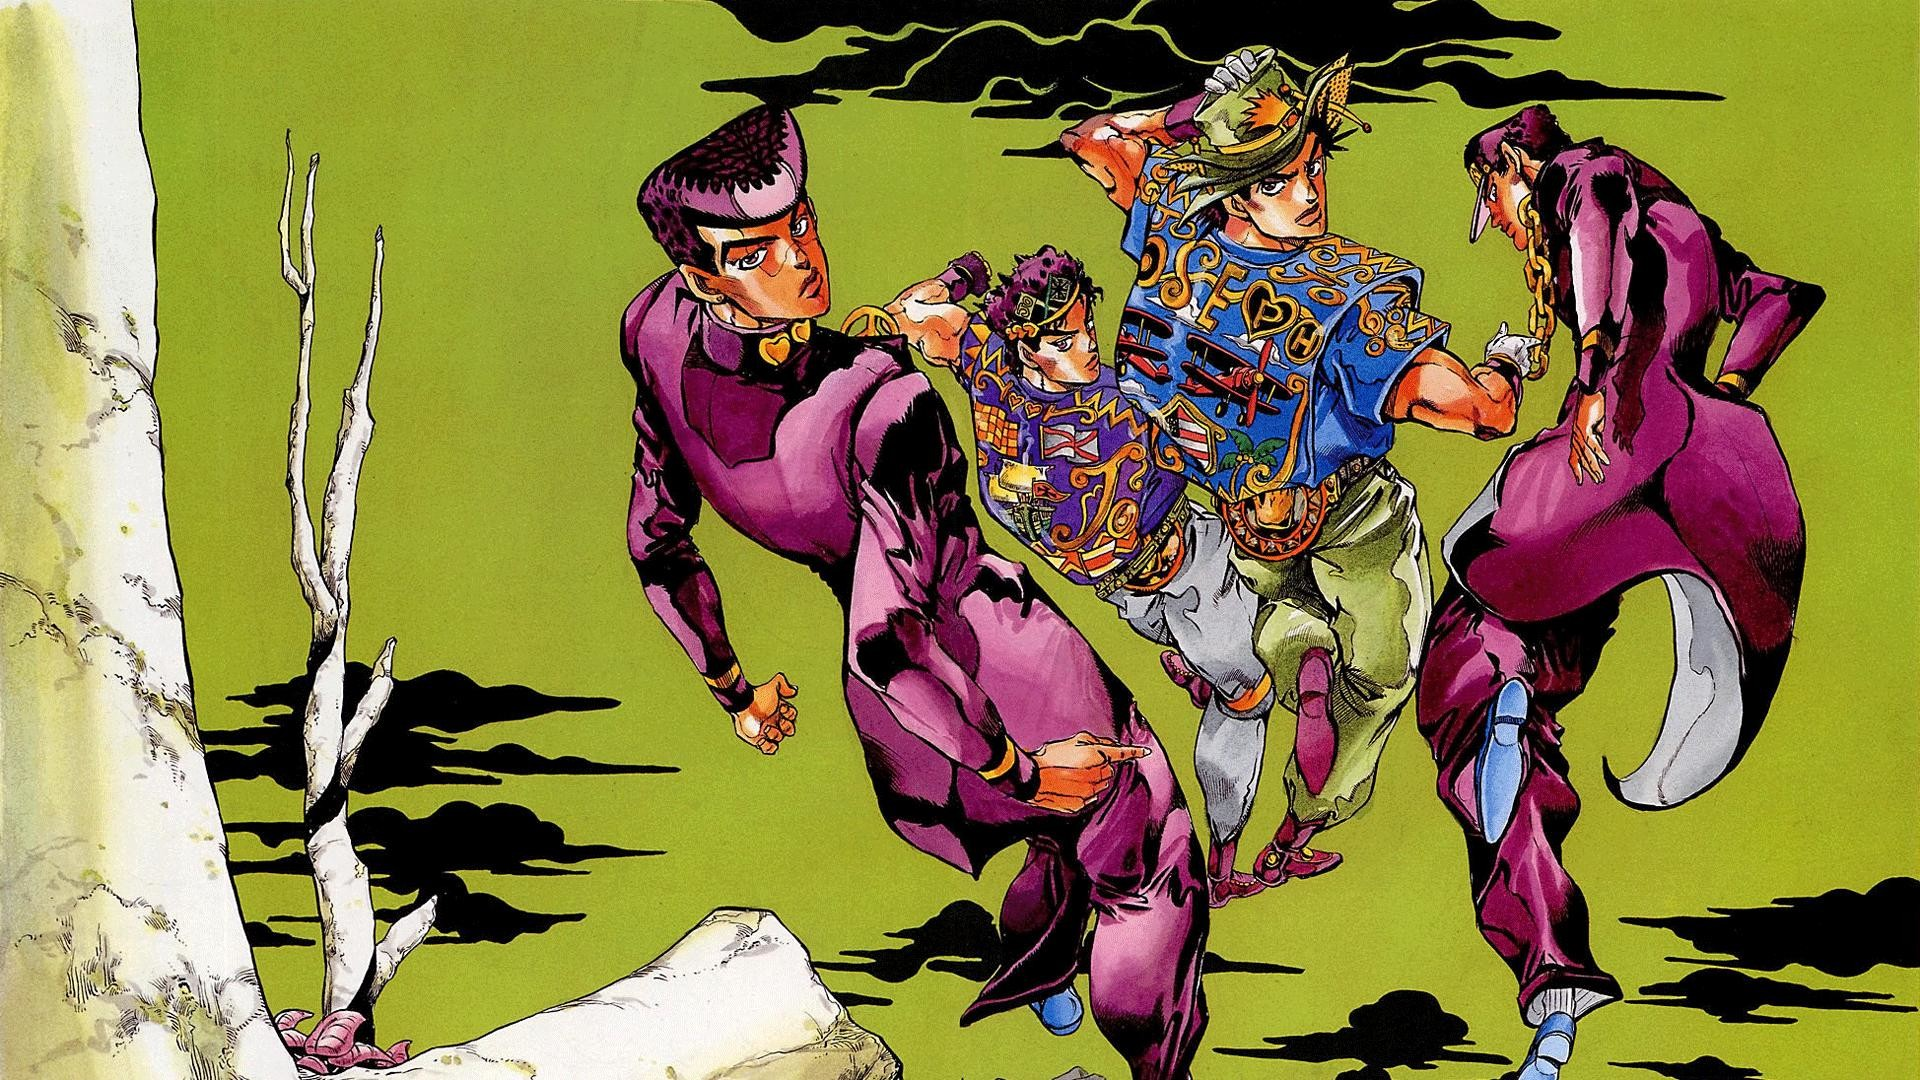 Jojo Bizarre Adventure Wallpaper (82+ images)